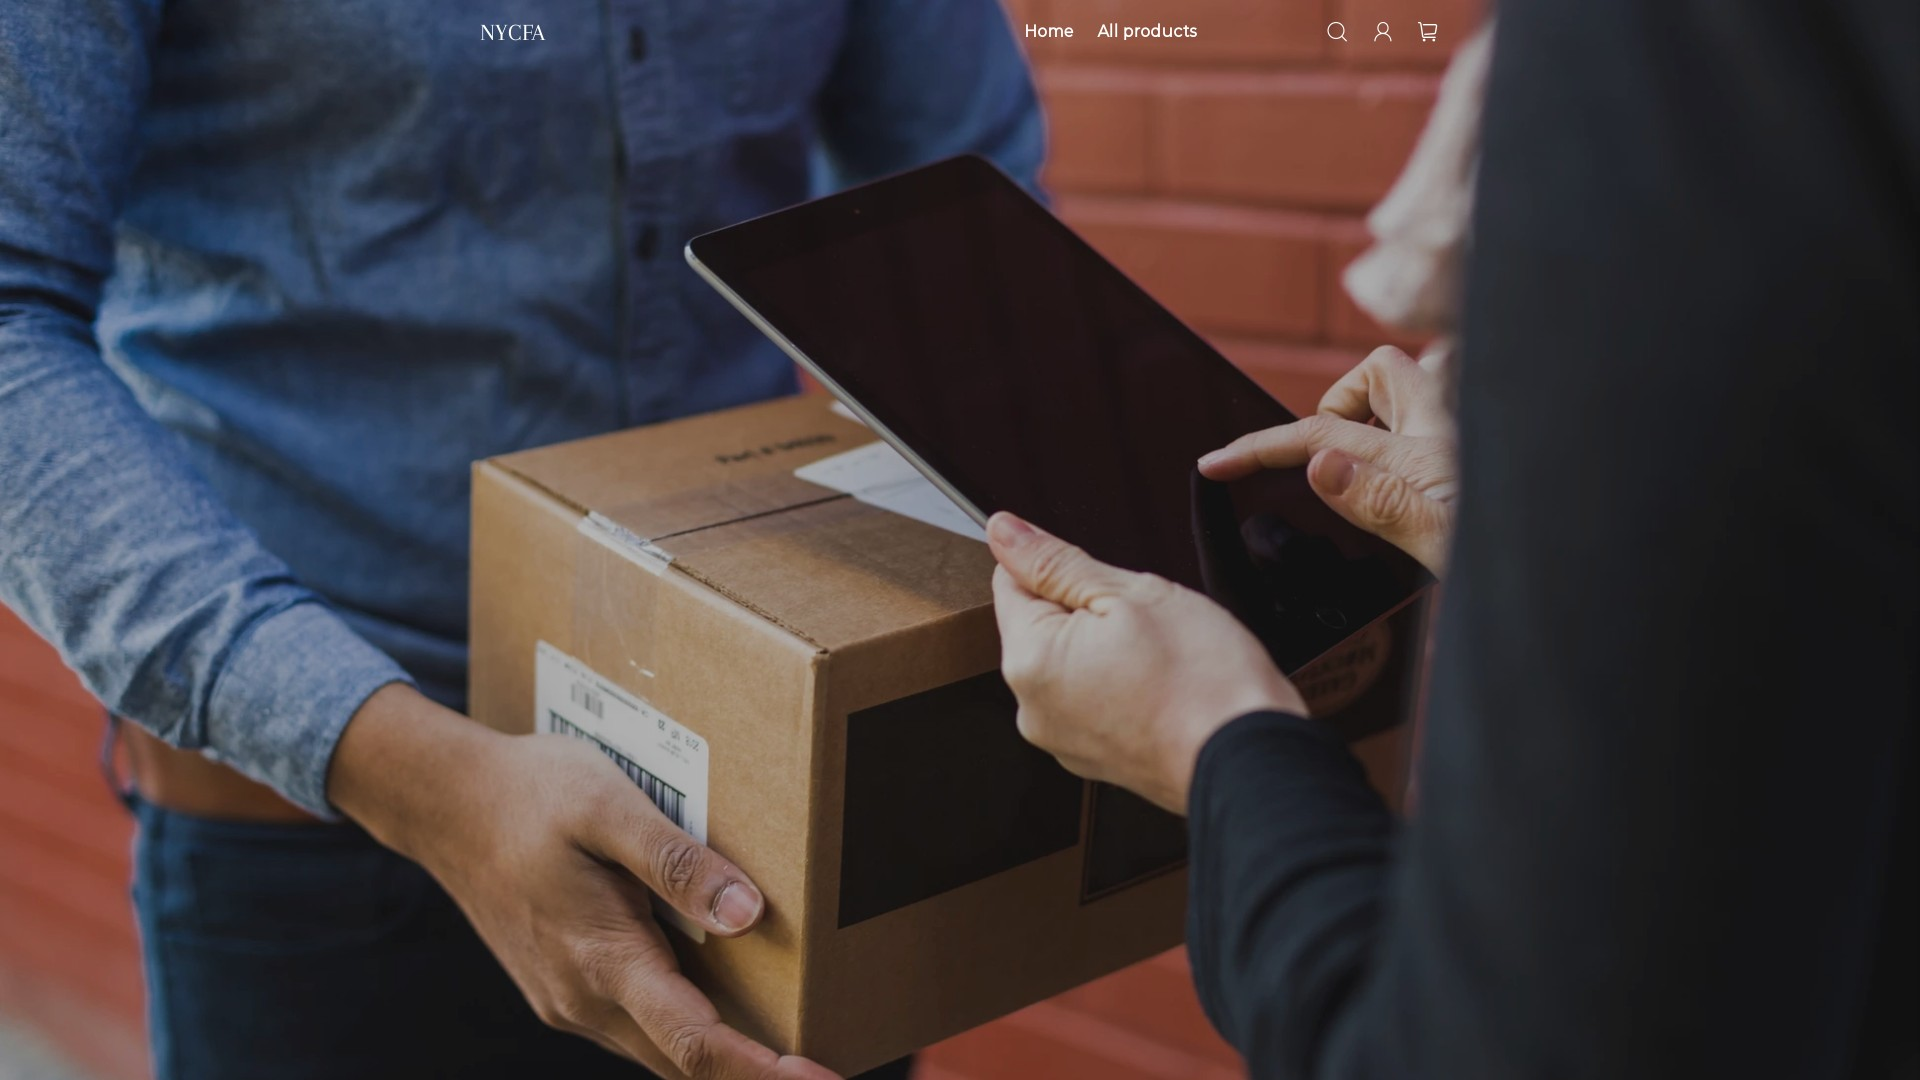 Is Nycfa a Scam? See the Review of the Online Store